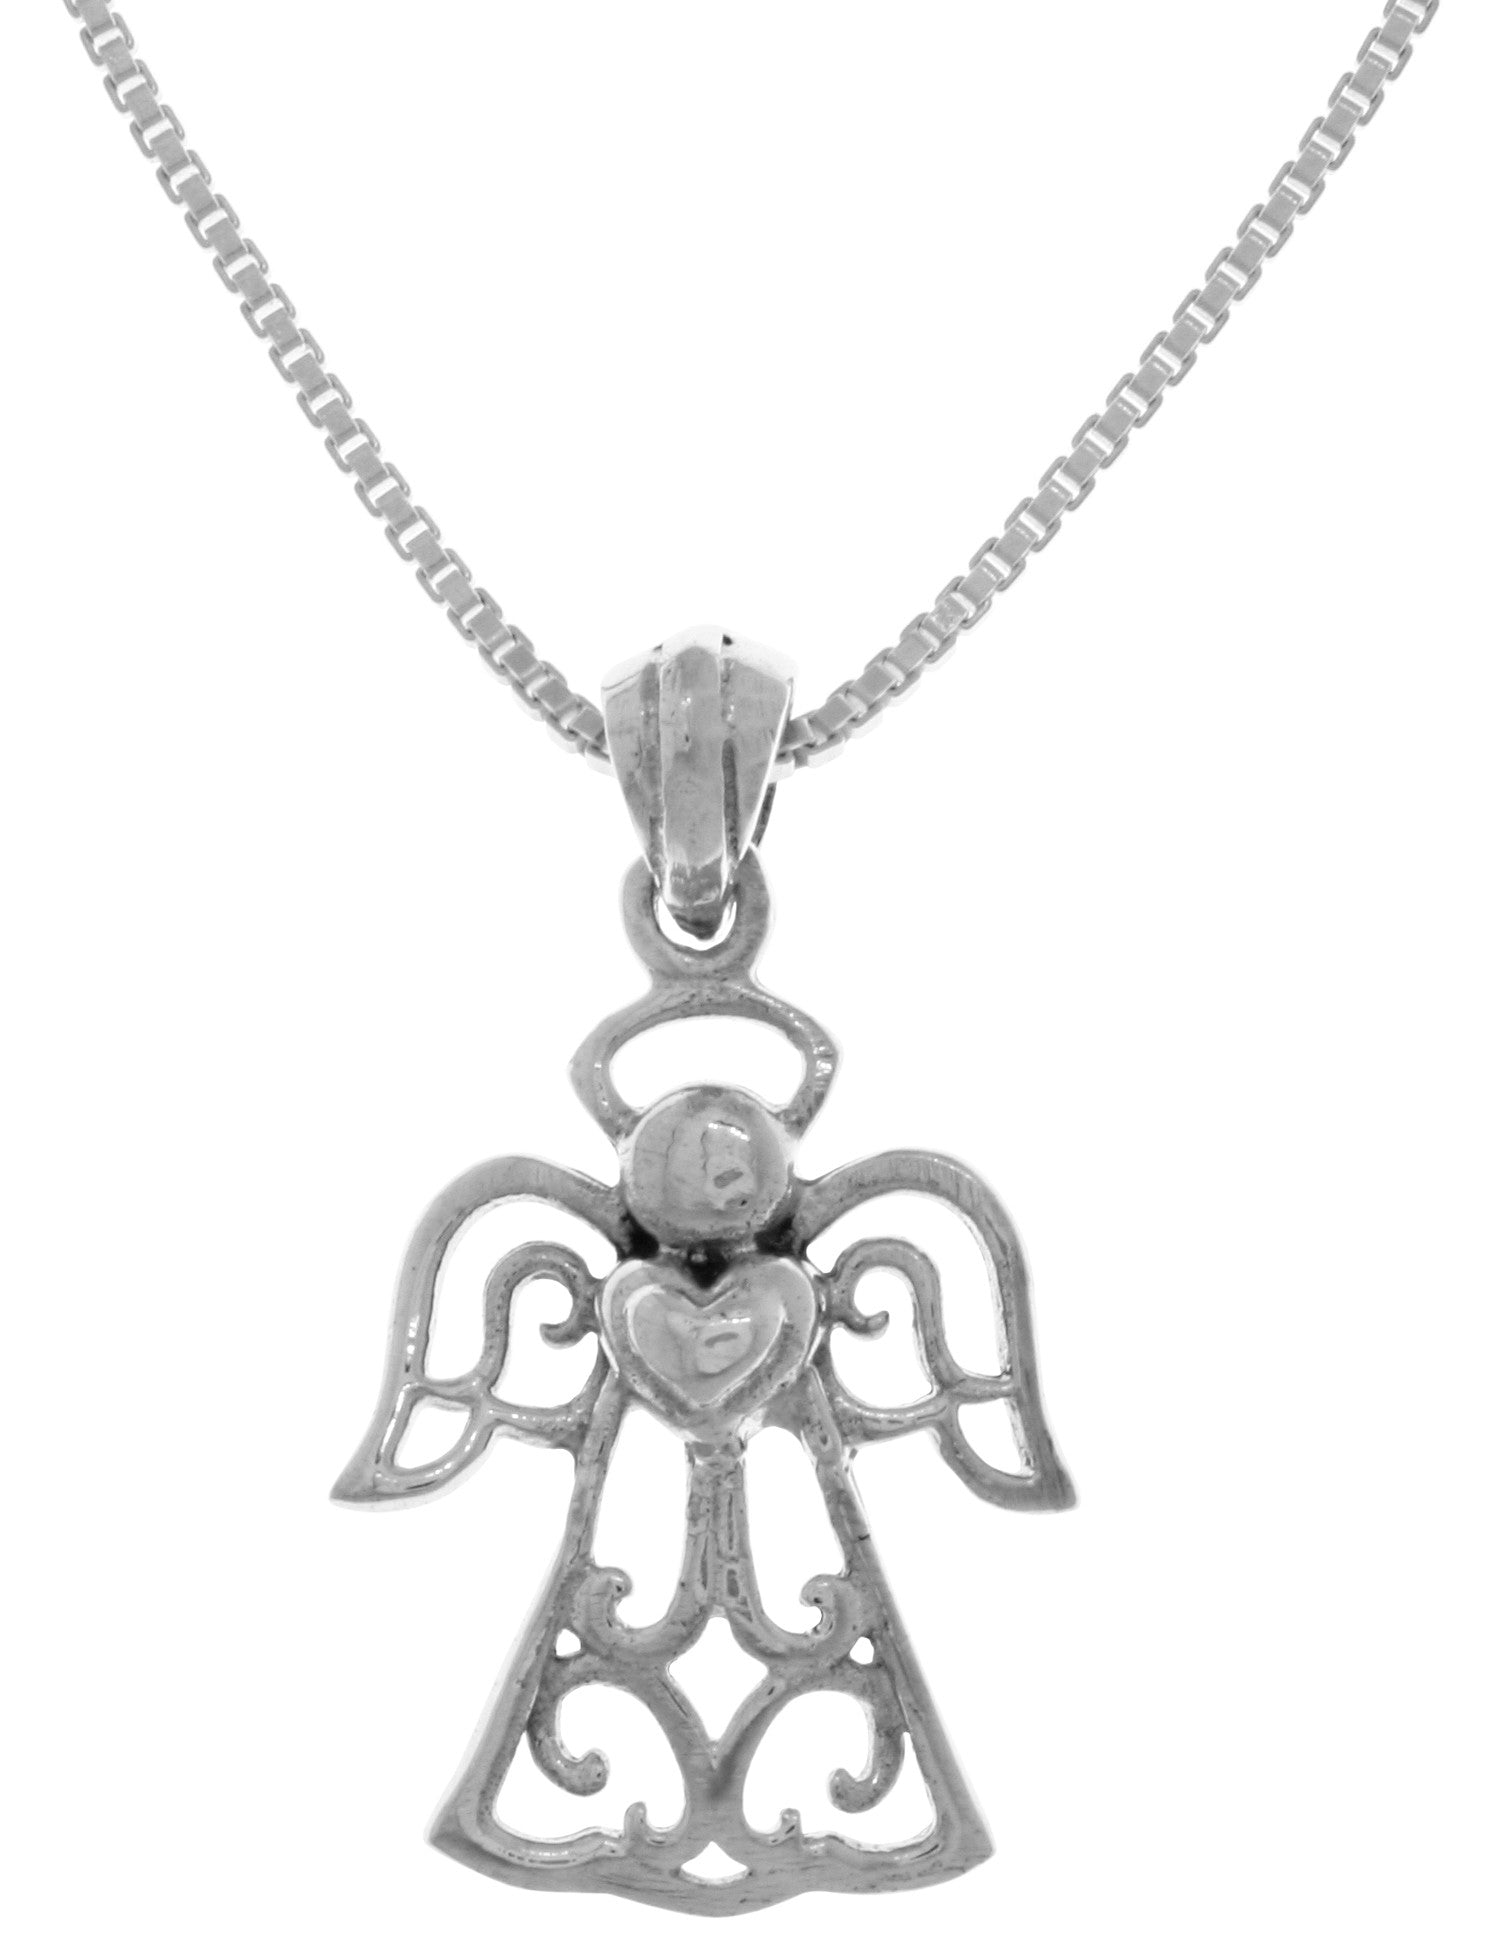 Jewelry trends sterling silver filigree love angel pendant on 18 jewelry trends sterling silver filigree love angel pendant on 18 inch box chain necklace aloadofball Image collections